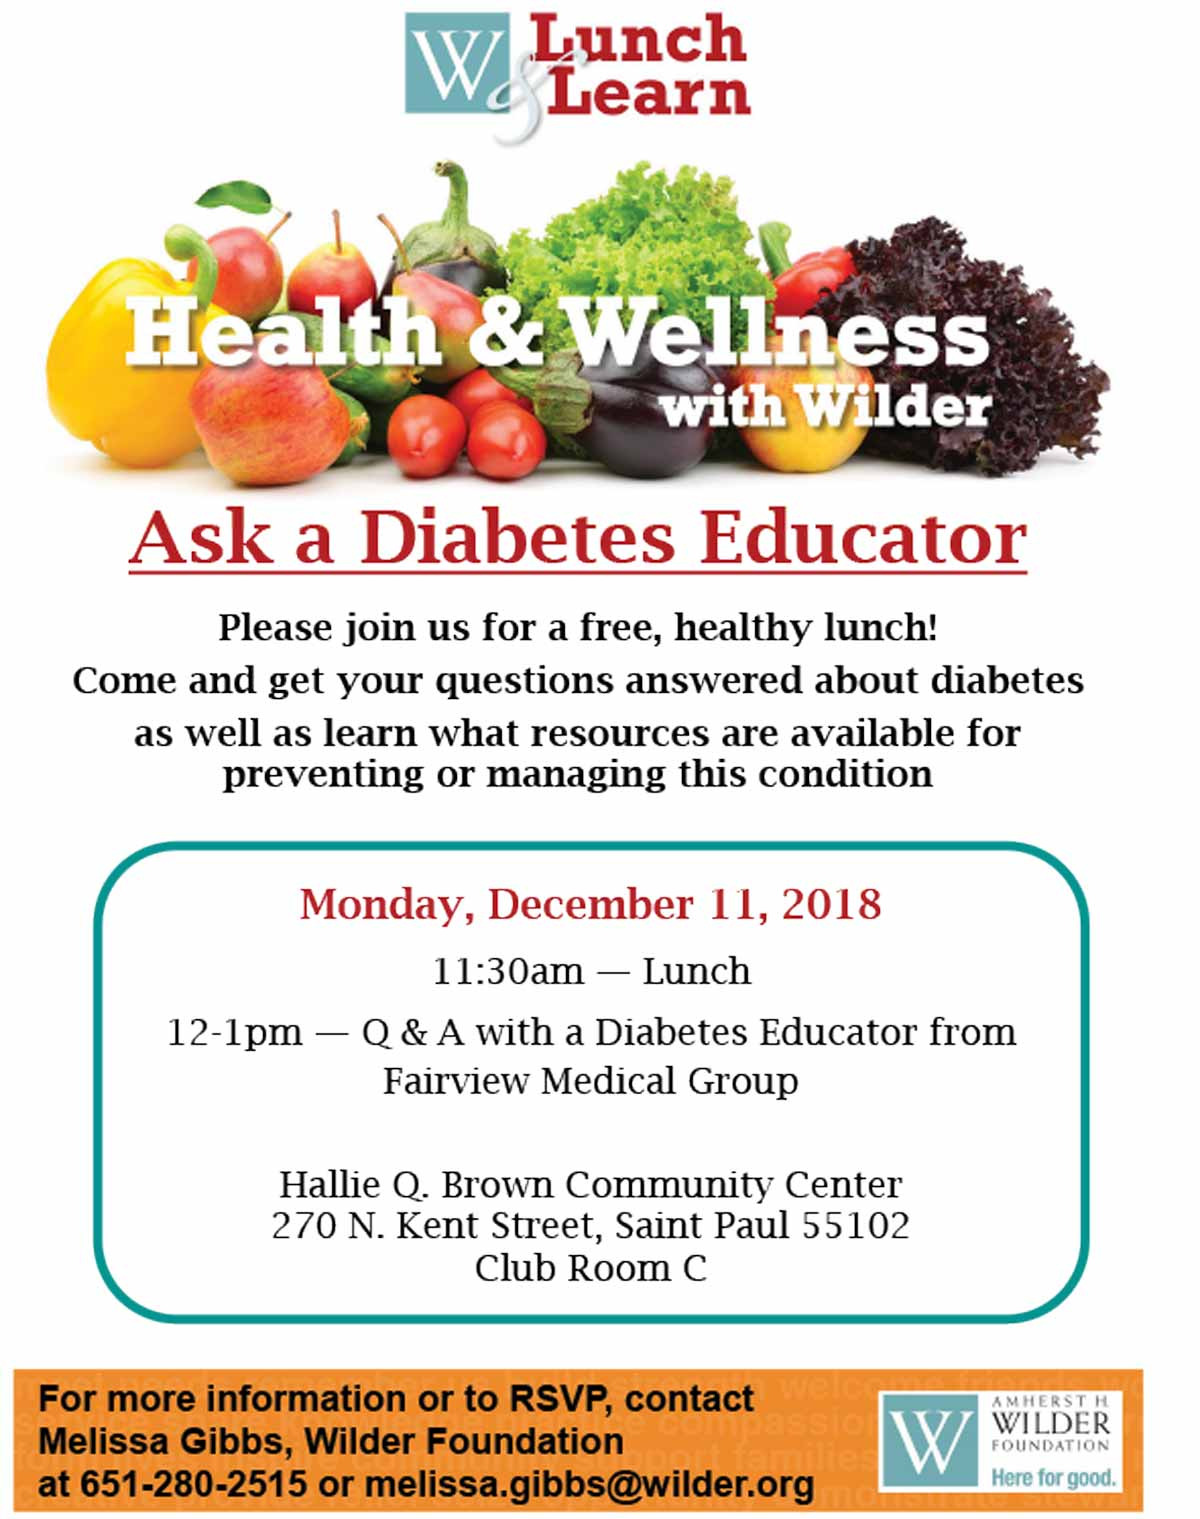 HQB Wilder CSA Lunch Learn_Diabetes Educator 12/11/2017